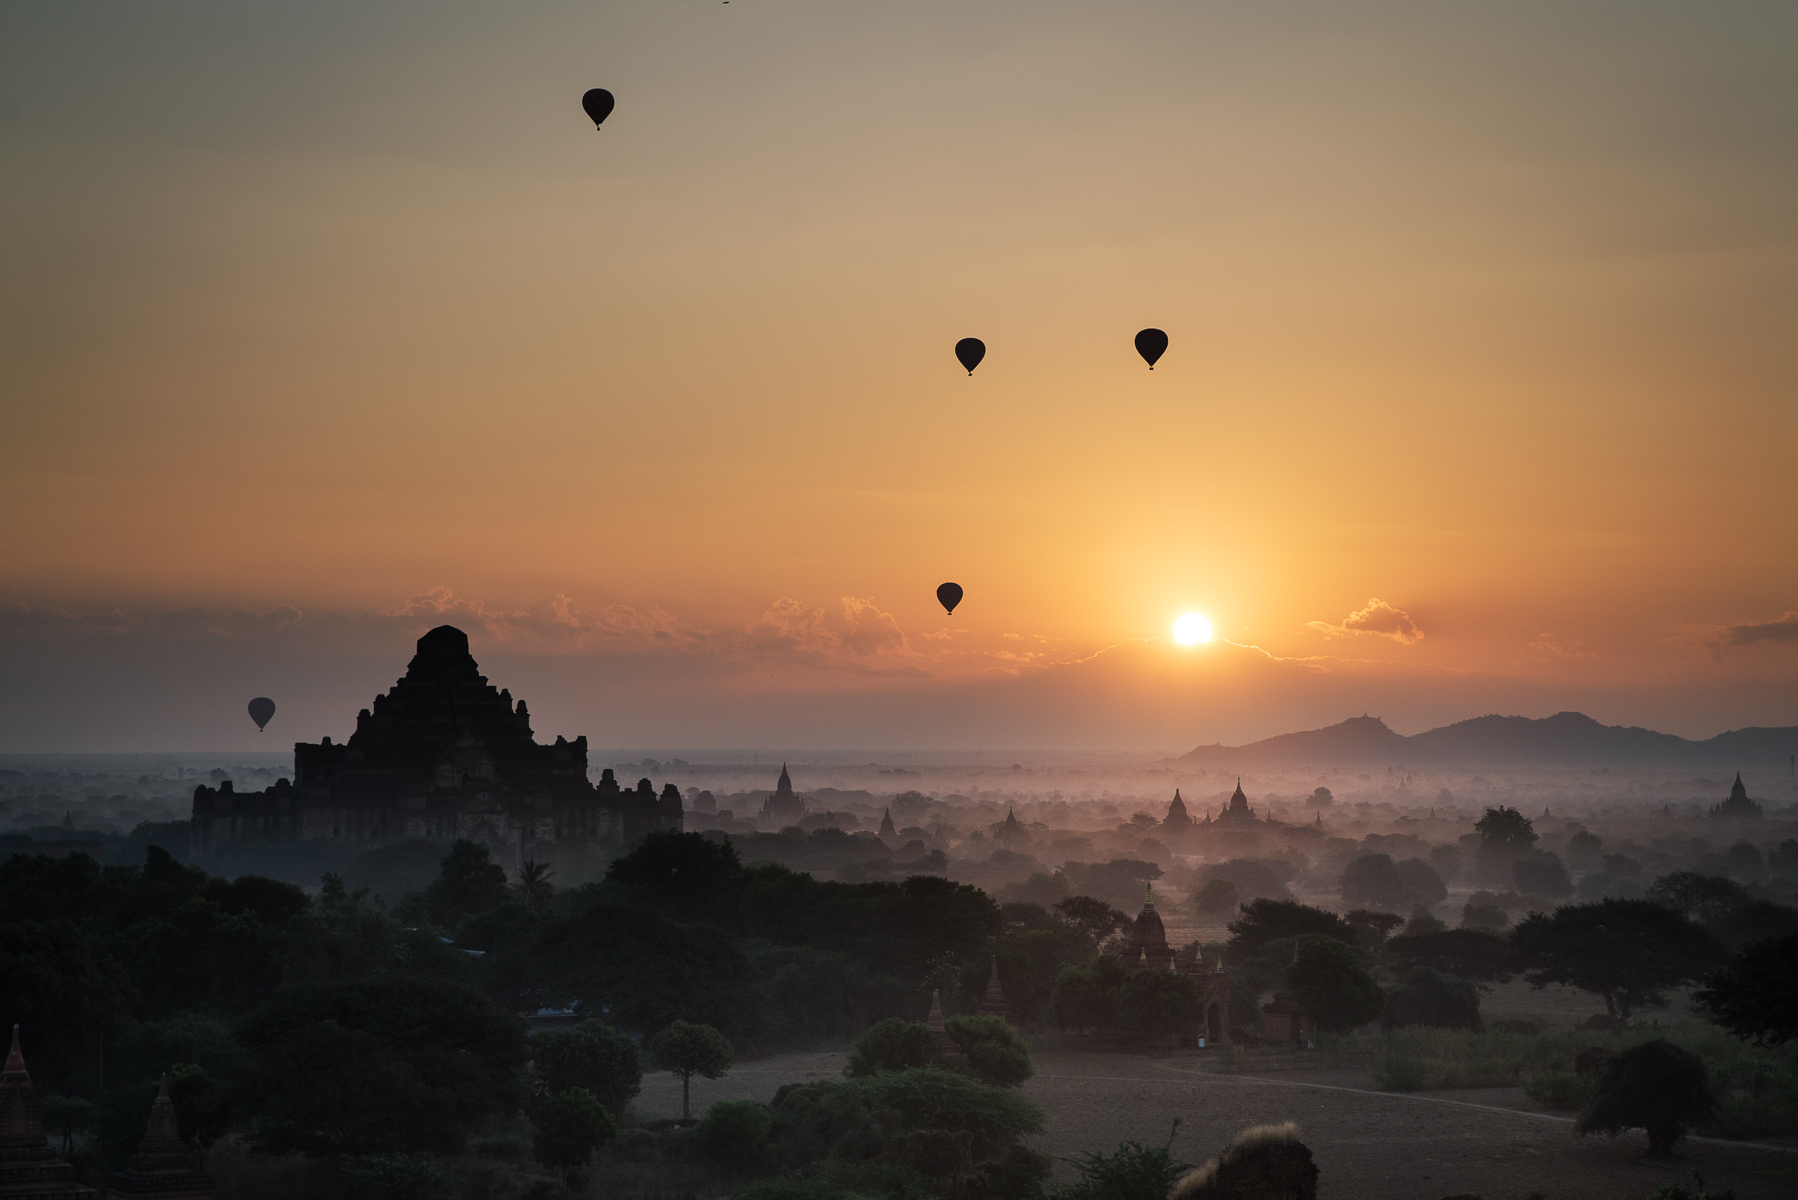 hot balloon in Myanmar